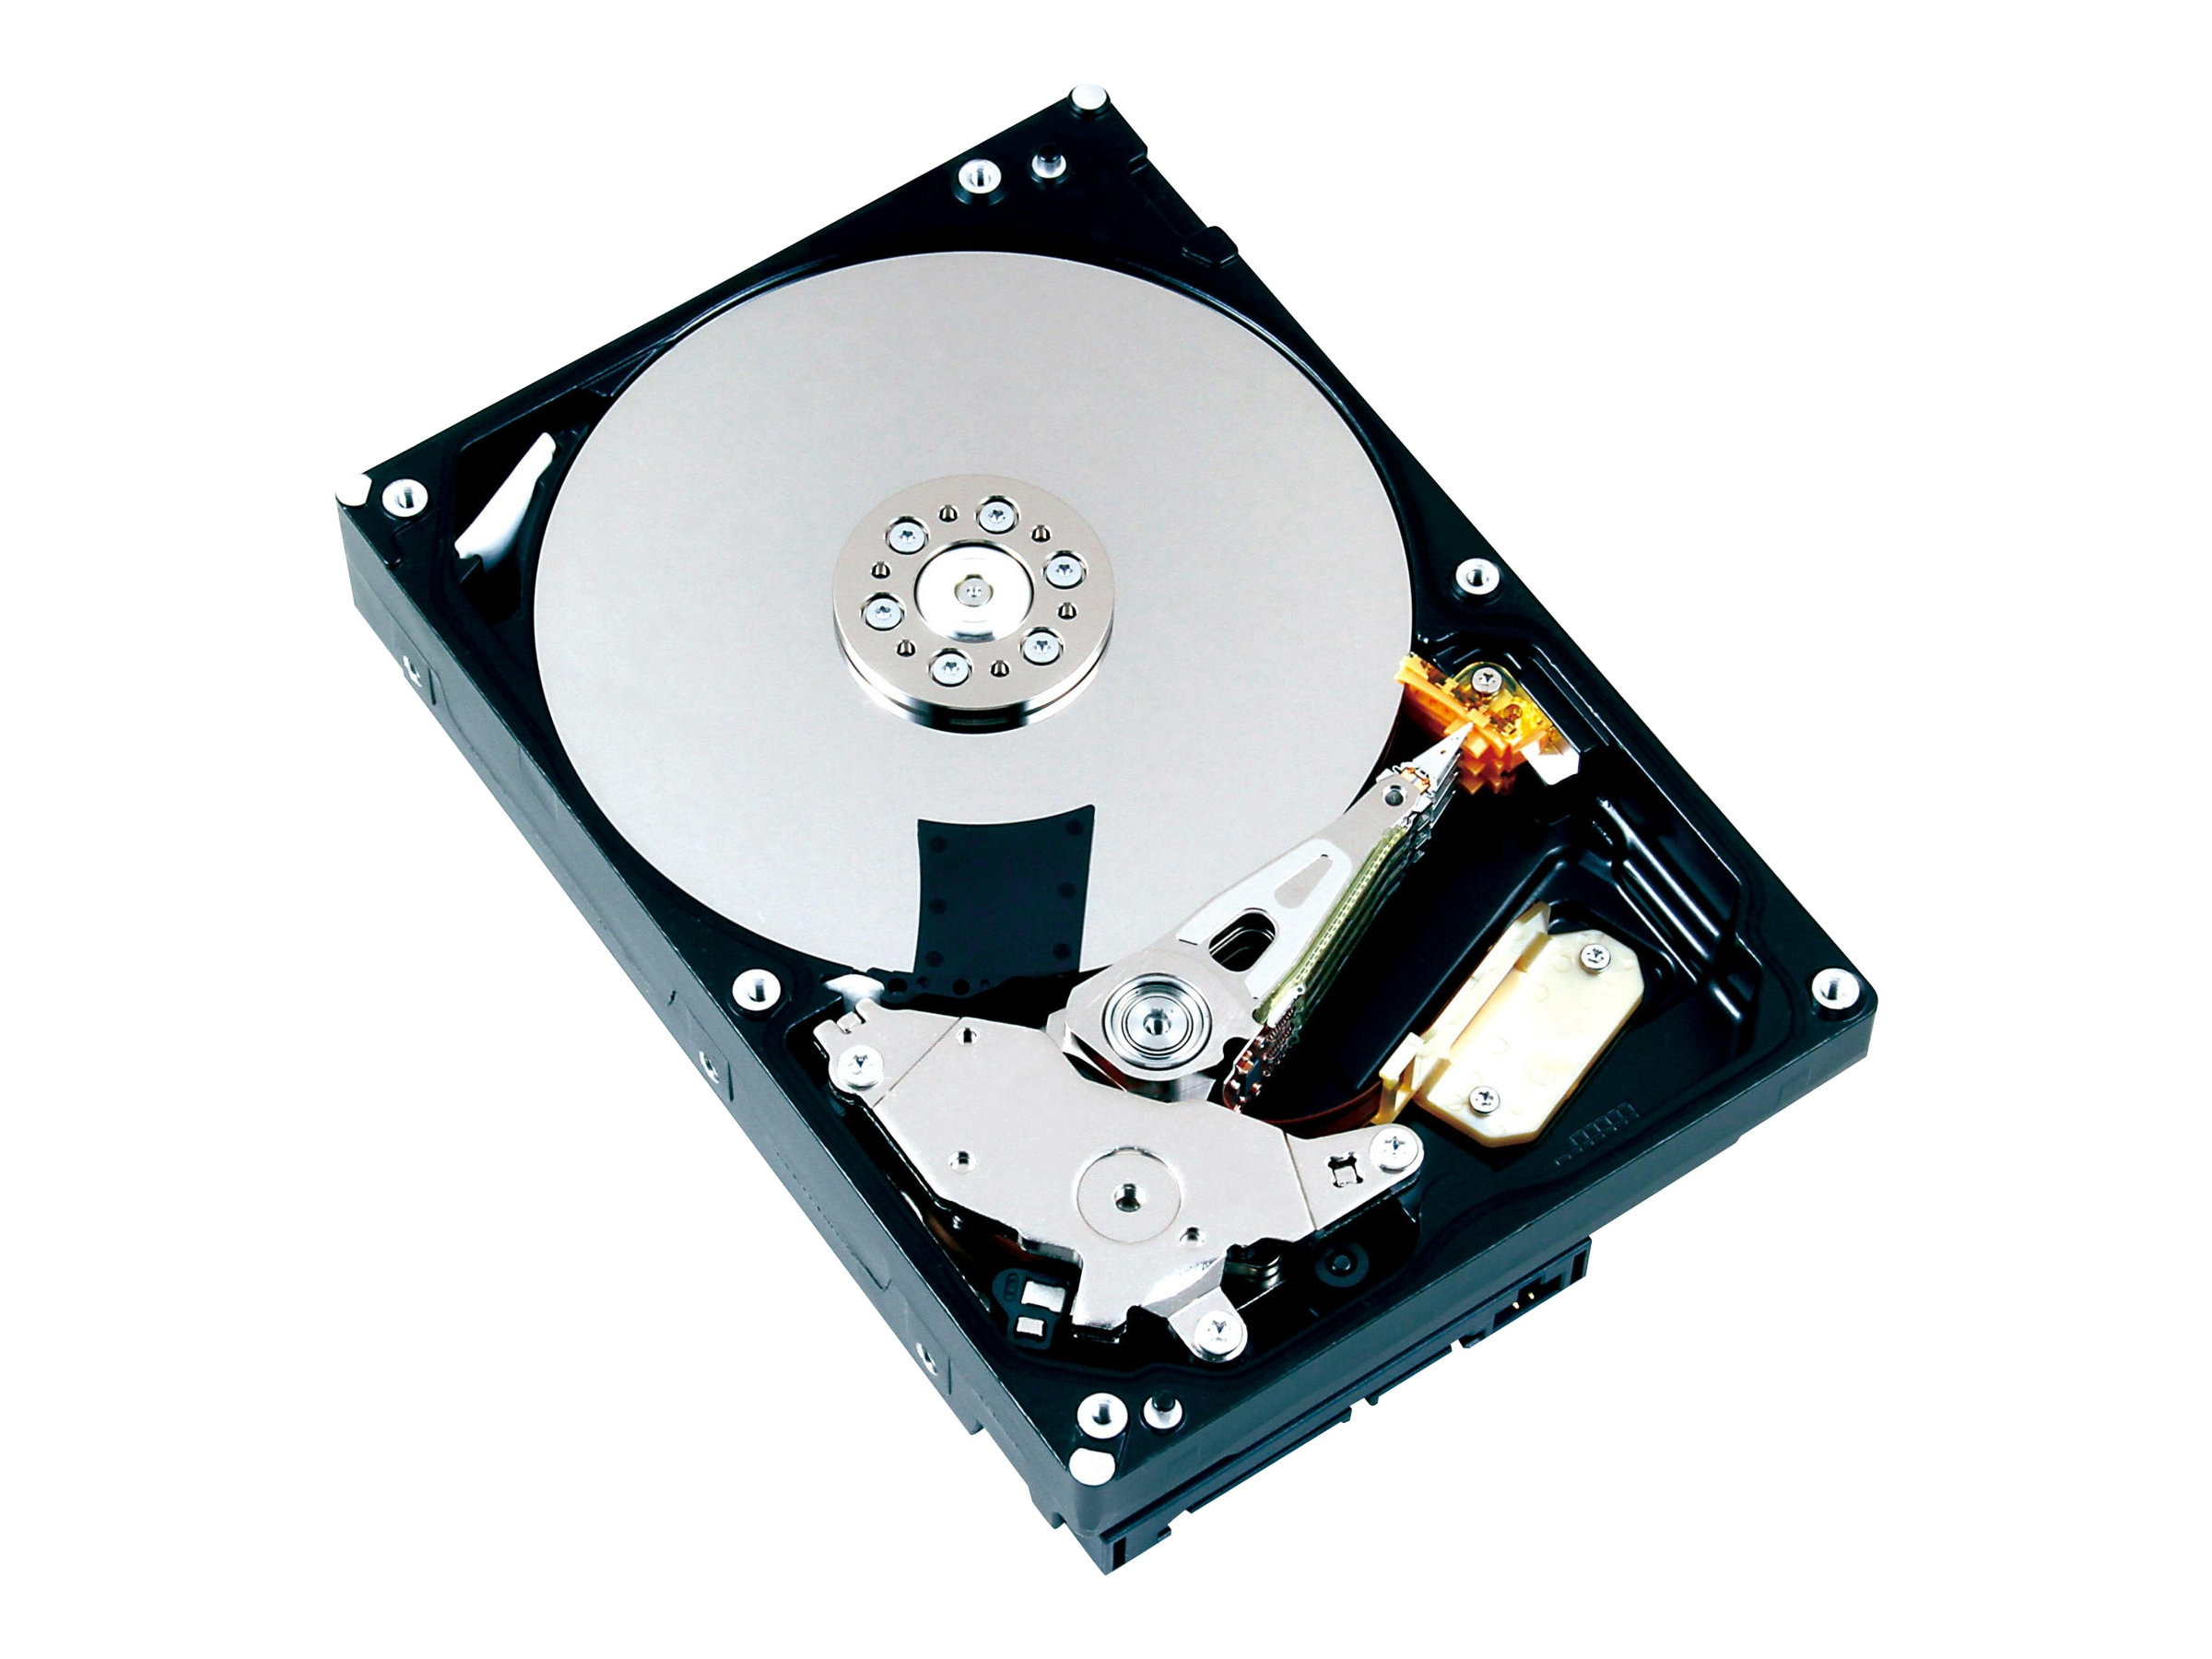 Toshiba 500GB 7200RPM SATA Internal Hard Drive